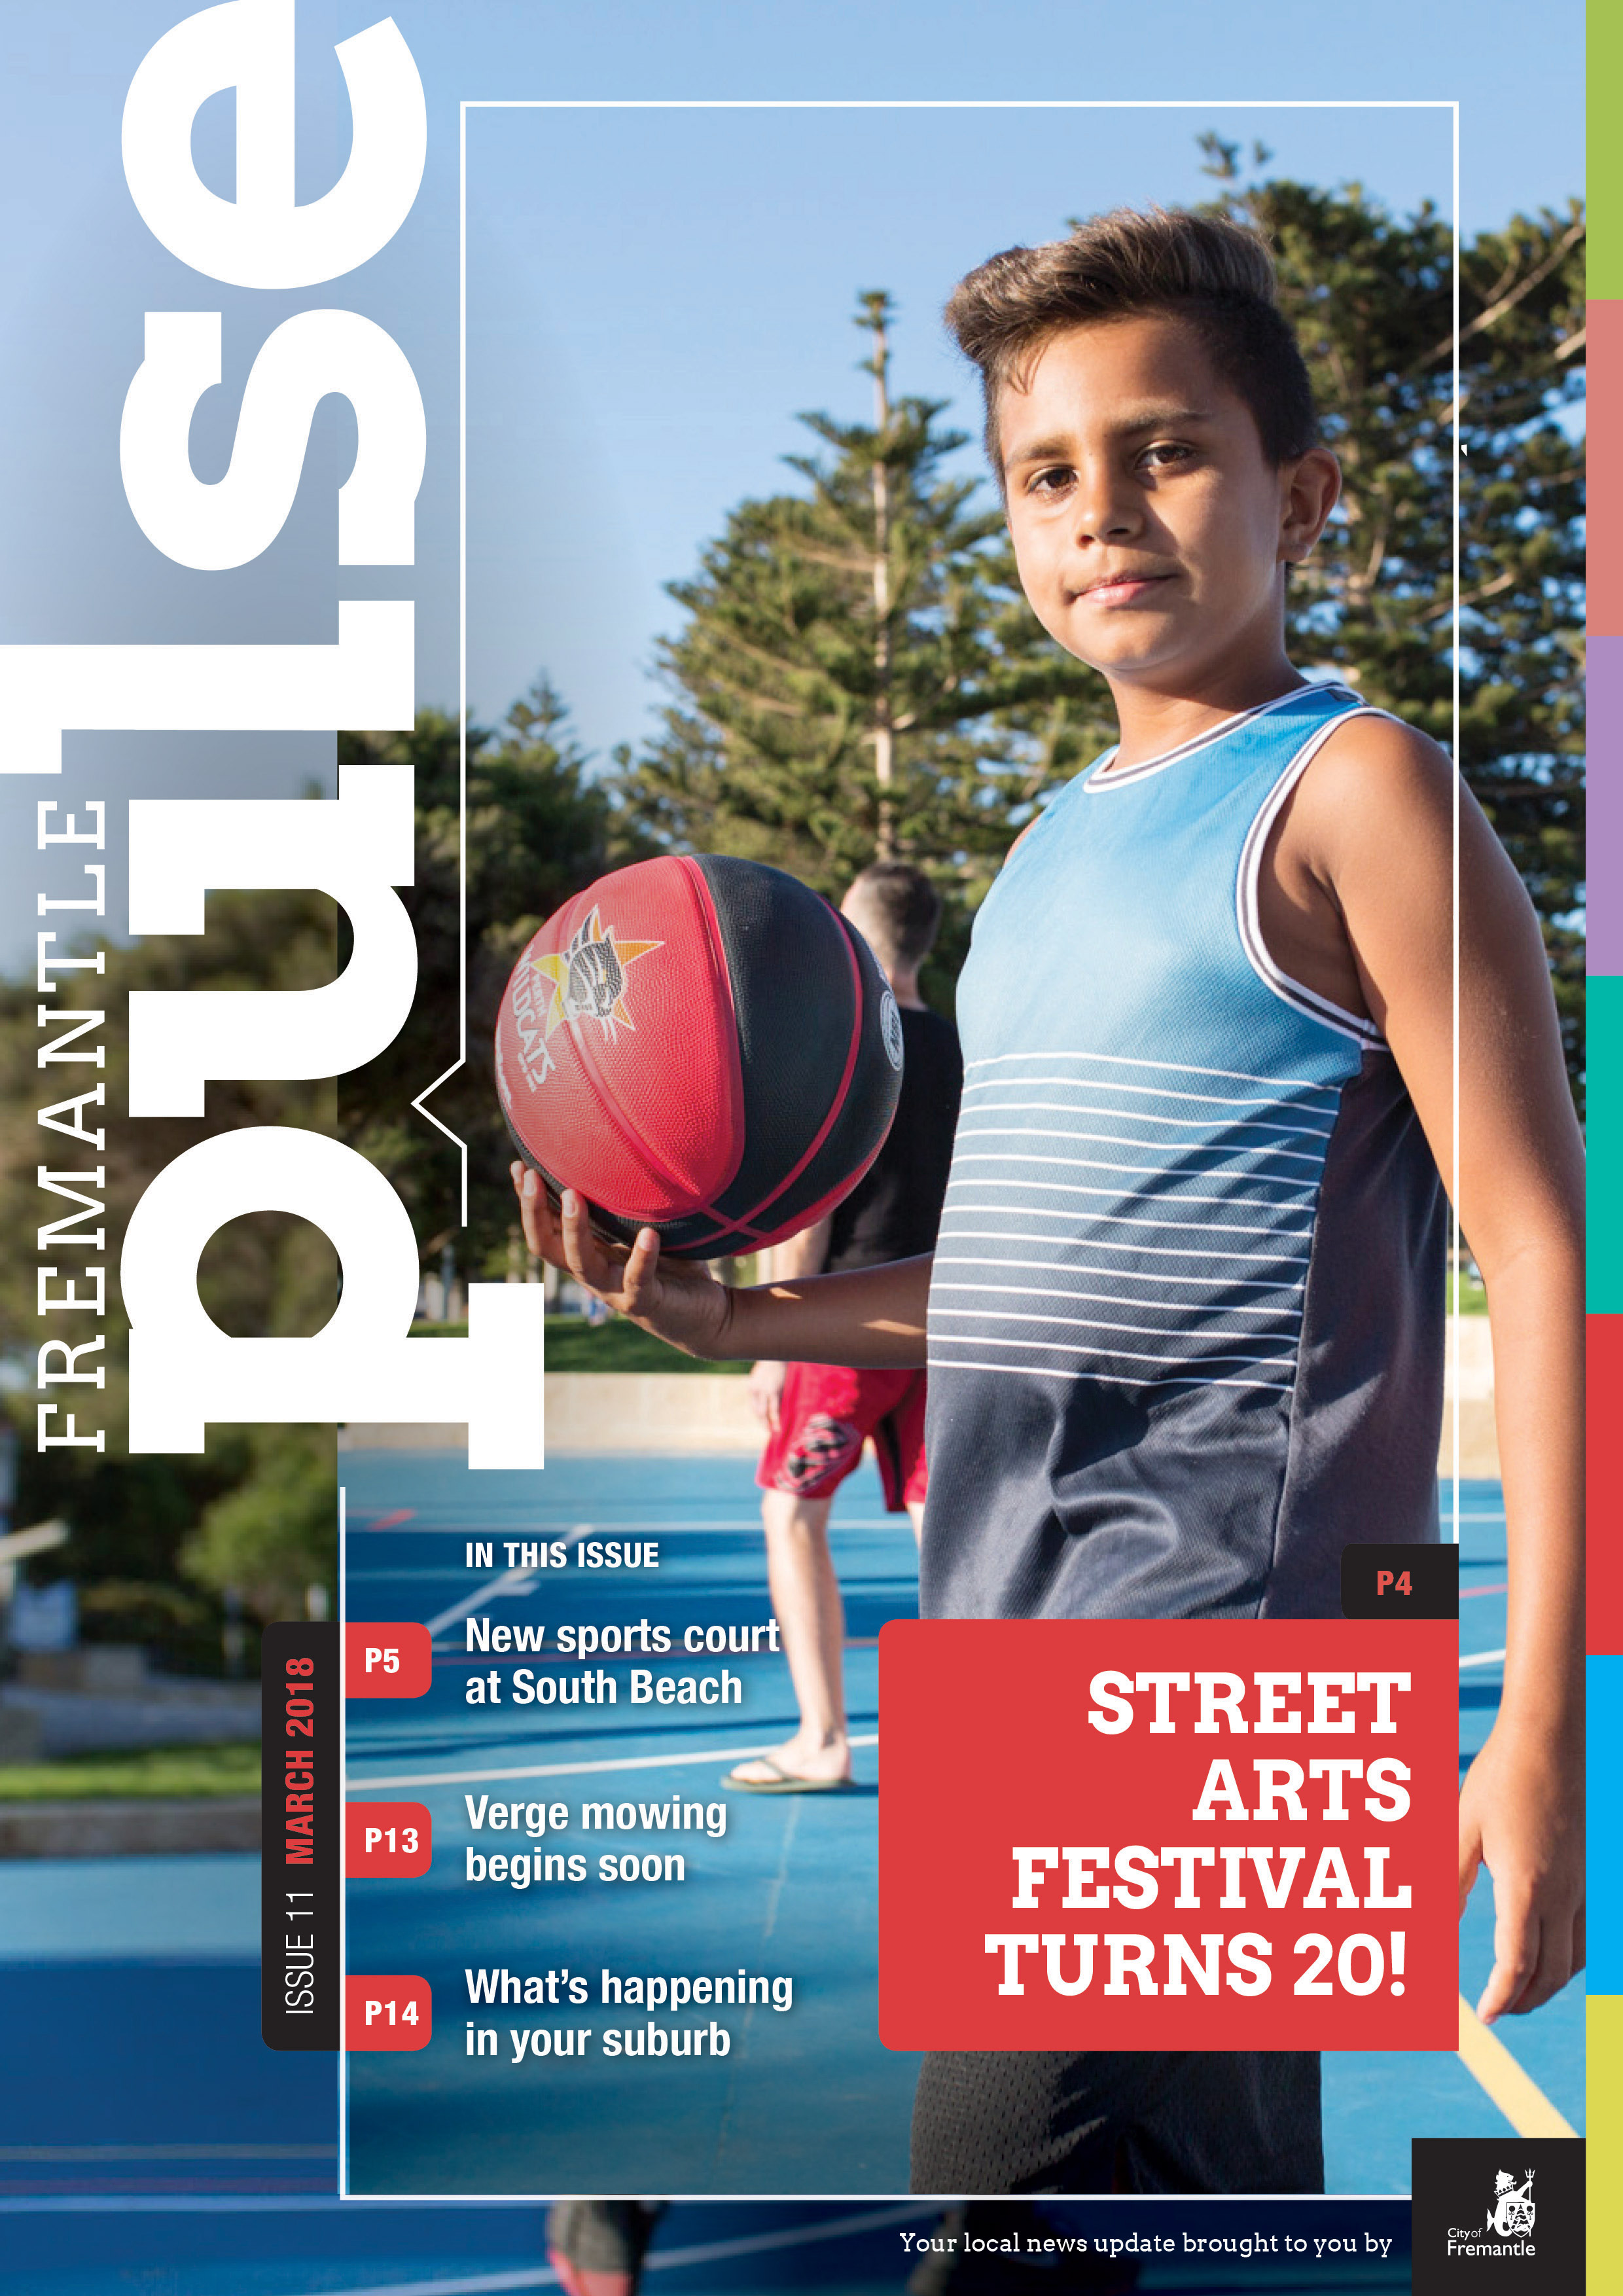 Front cover of the magazine featuring a young boy standing with a basketball on a basketball court.